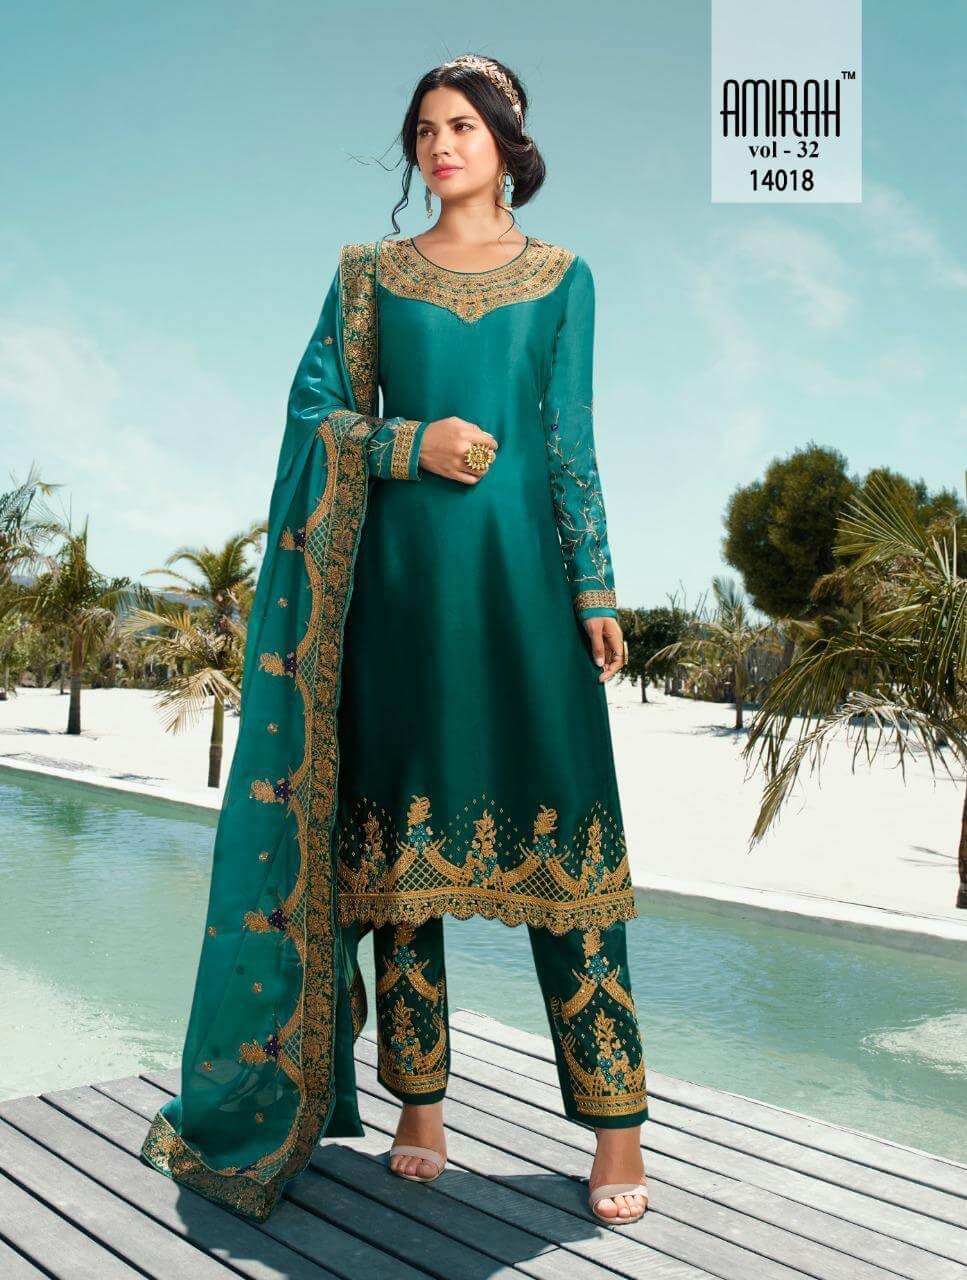 Amirah Vol 32 collection 2